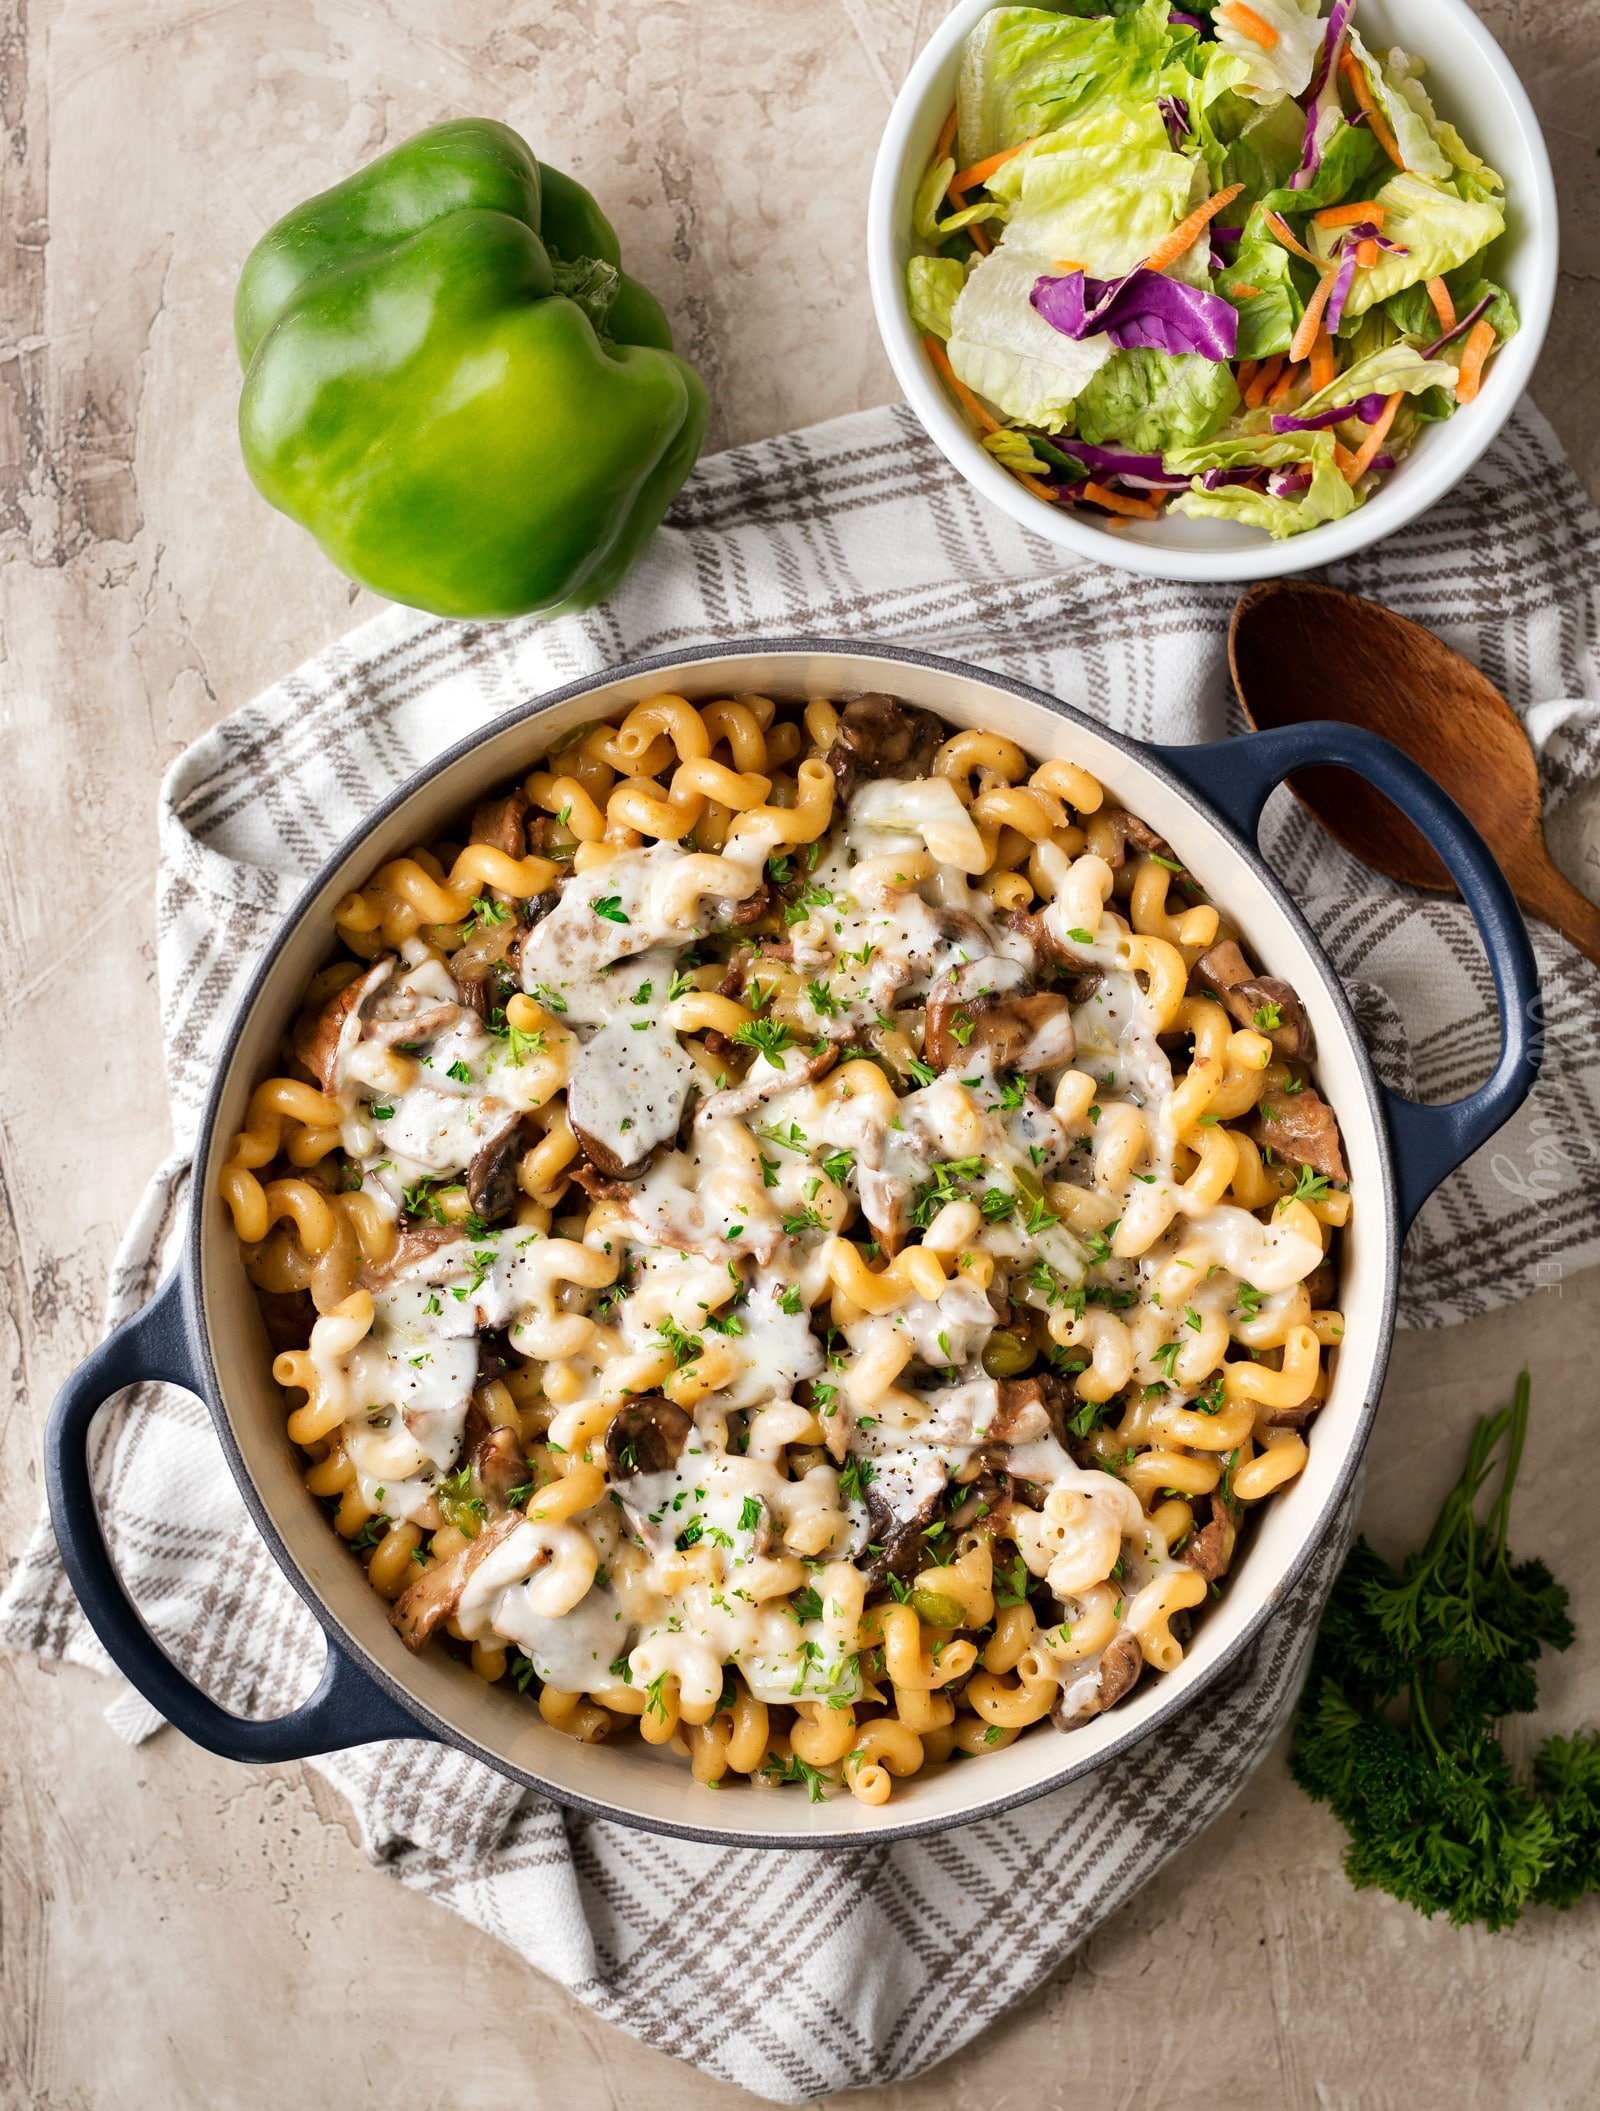 One Pot Philly Cheesesteak Pasta | Great Philly cheesesteak flavors are mixed with creamy pasta in this one pot meal that's ready in 30 minutes!  An easy dinner your family will love! | https://www.thechunkychef.com | #cheesesteak #pasta #onepot #easydinner #comfortfood